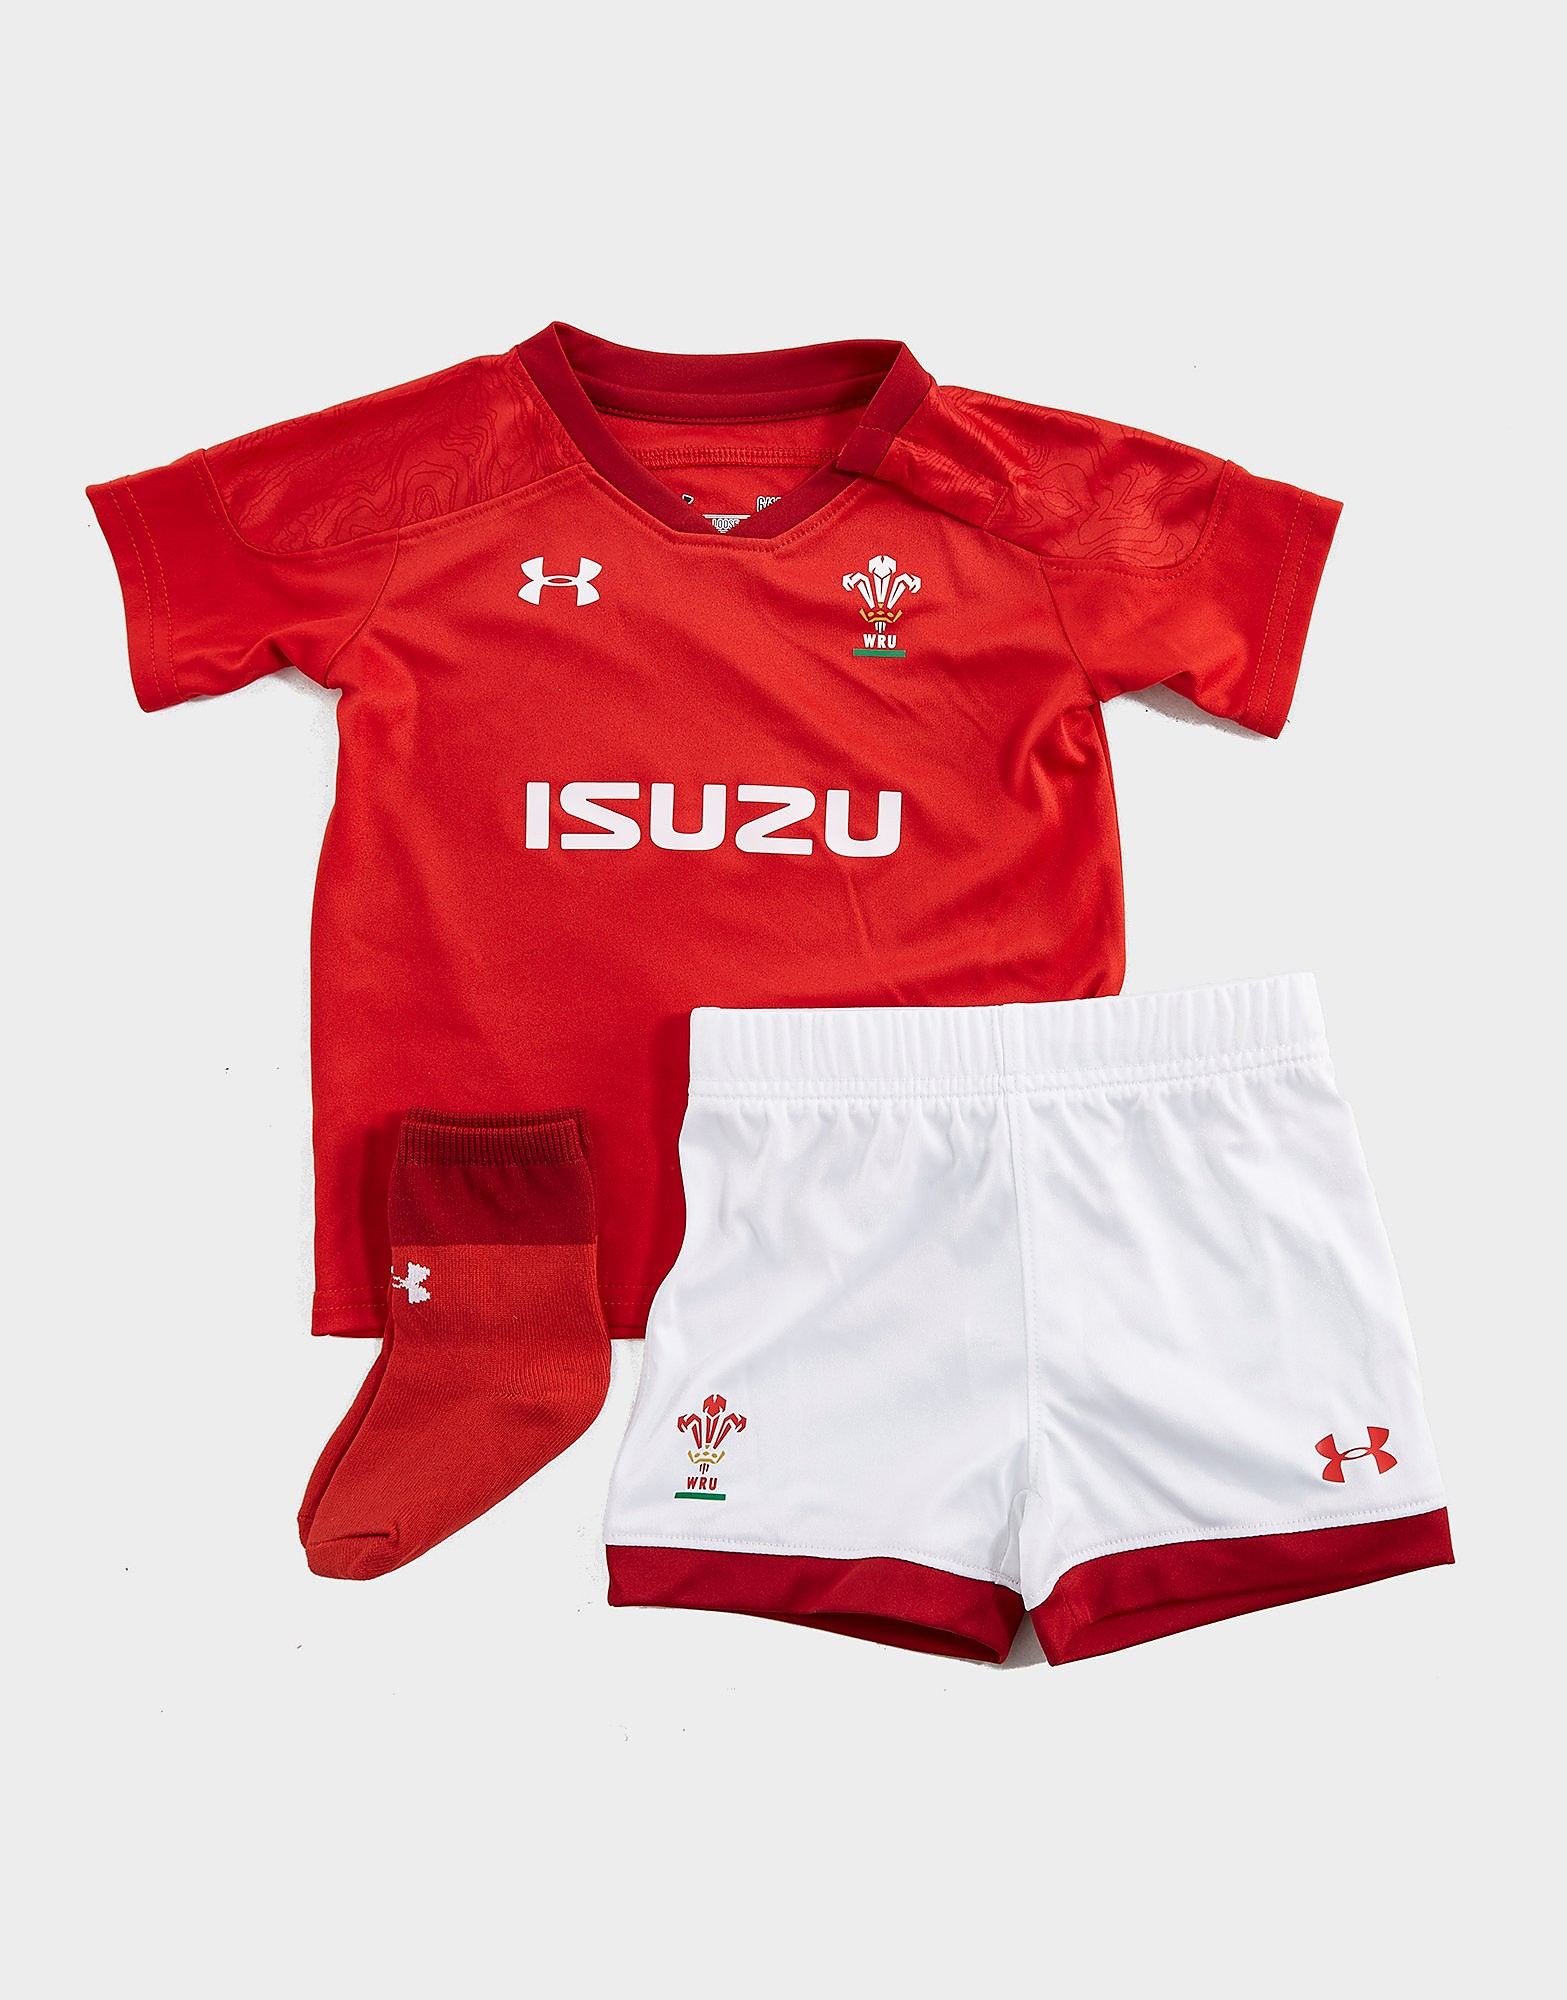 Under Armour Wales RU 2017/18 Kit Infant PRE ORDER